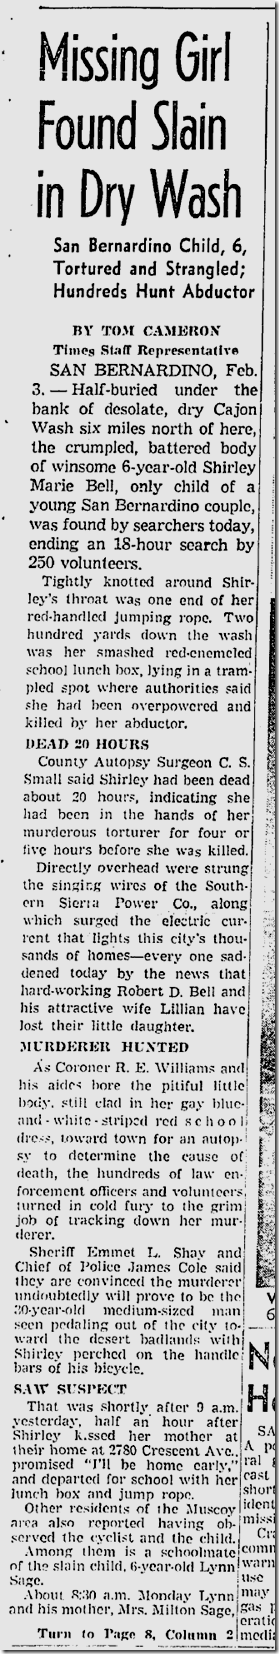 Feb. 4, 1942, Girl Strangled